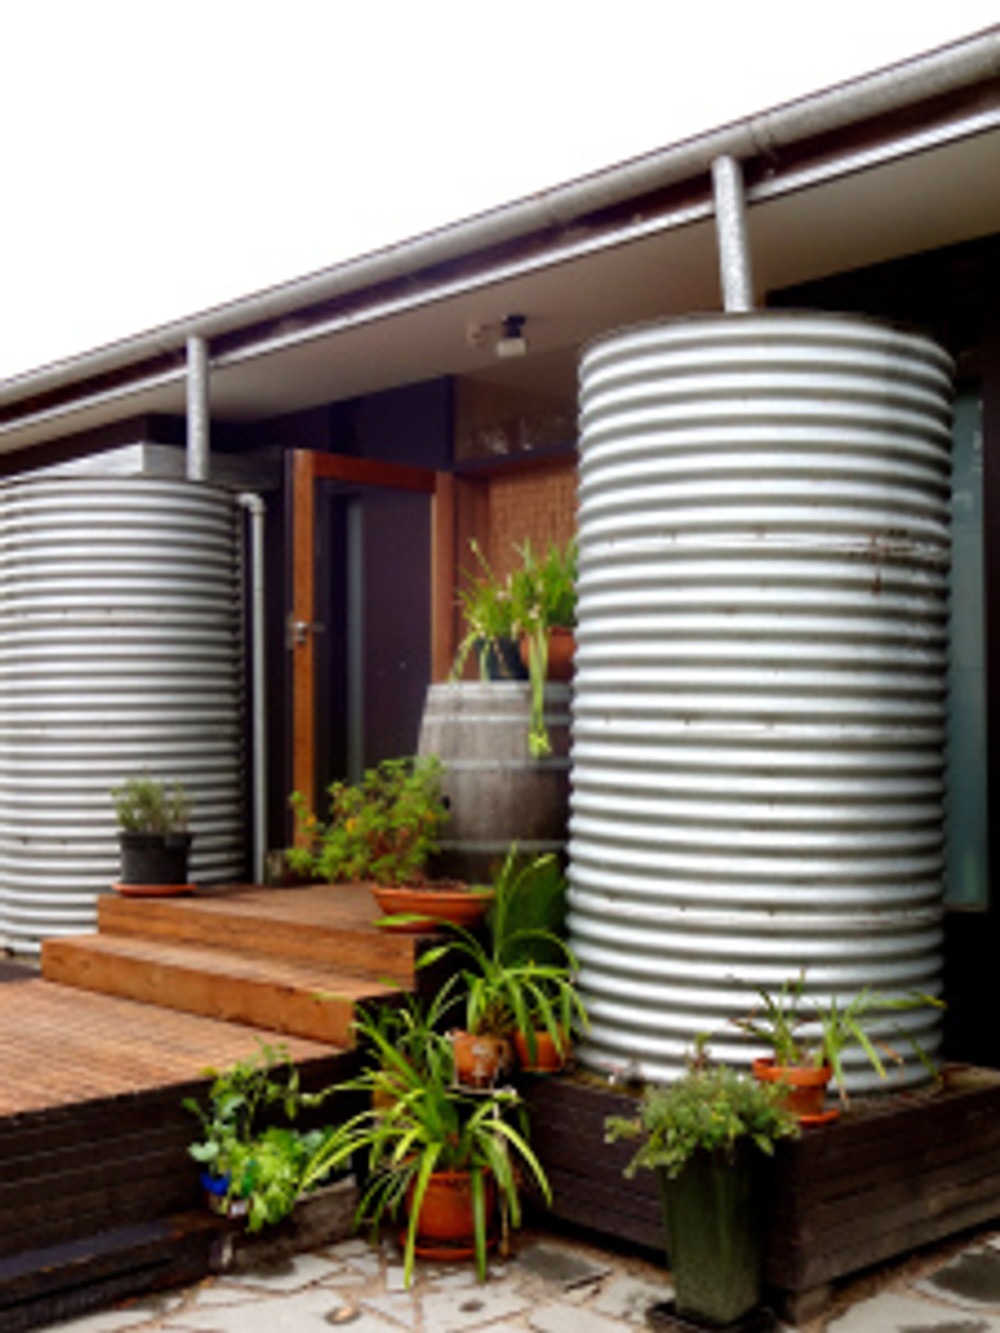 back entrance to the house - 1000 liter rain cisterns with water so lovely you can drink right from them